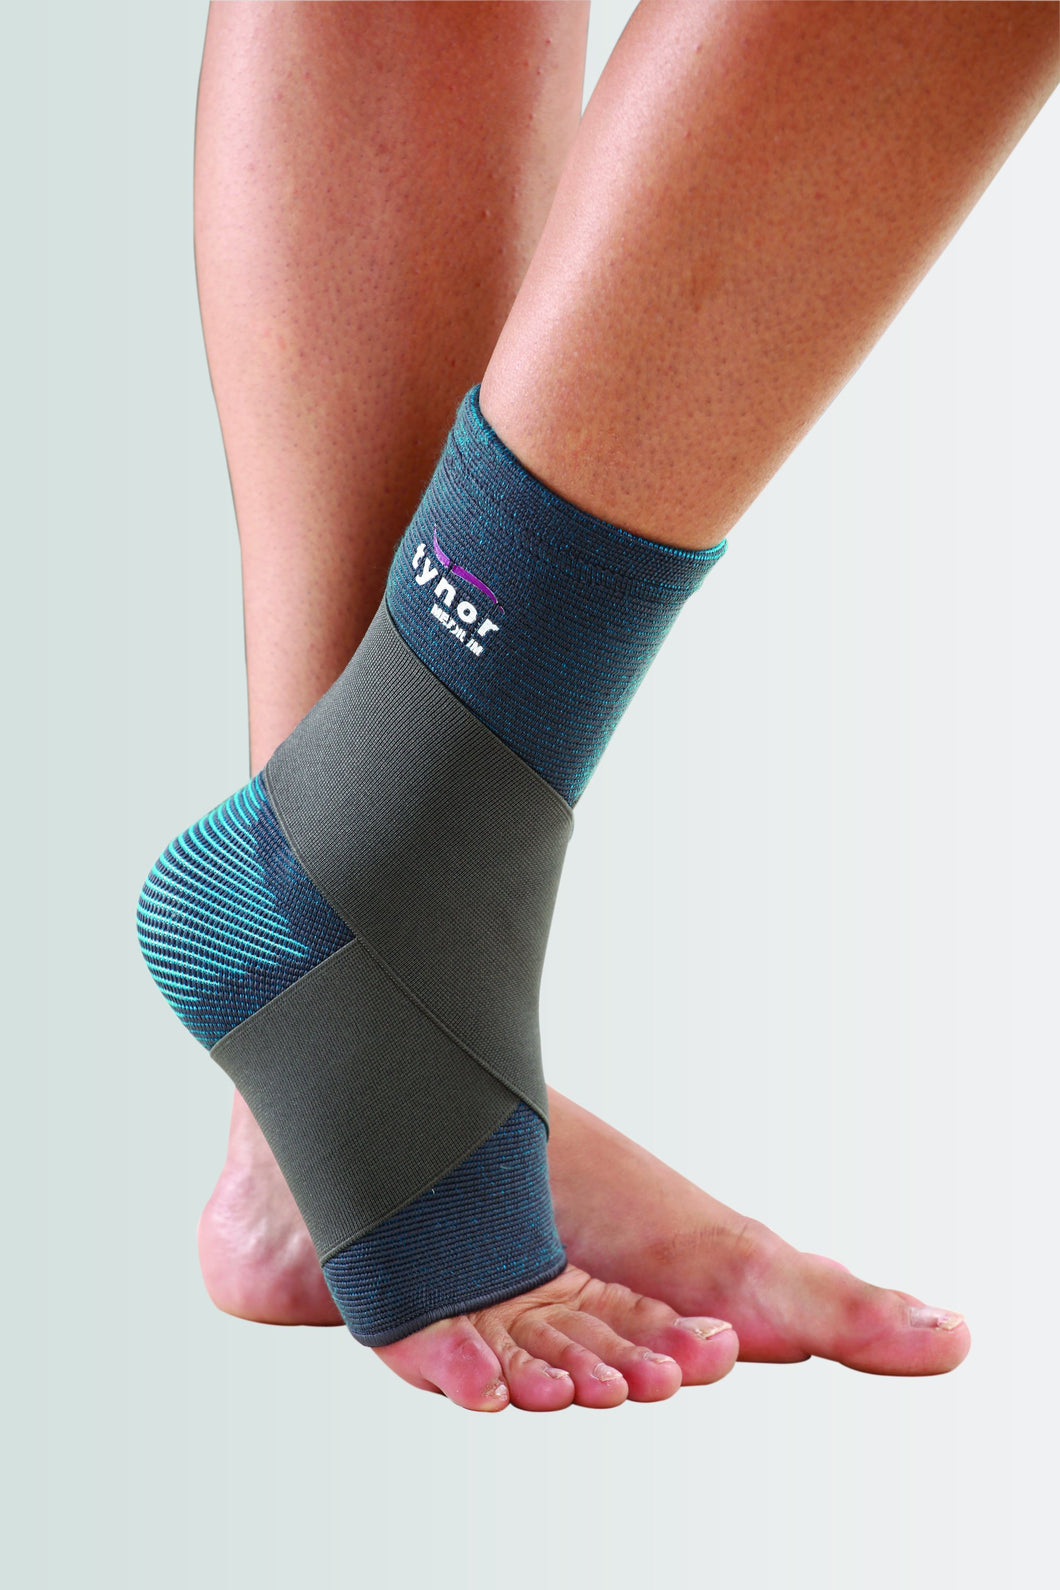 ANKLE BINDER - S